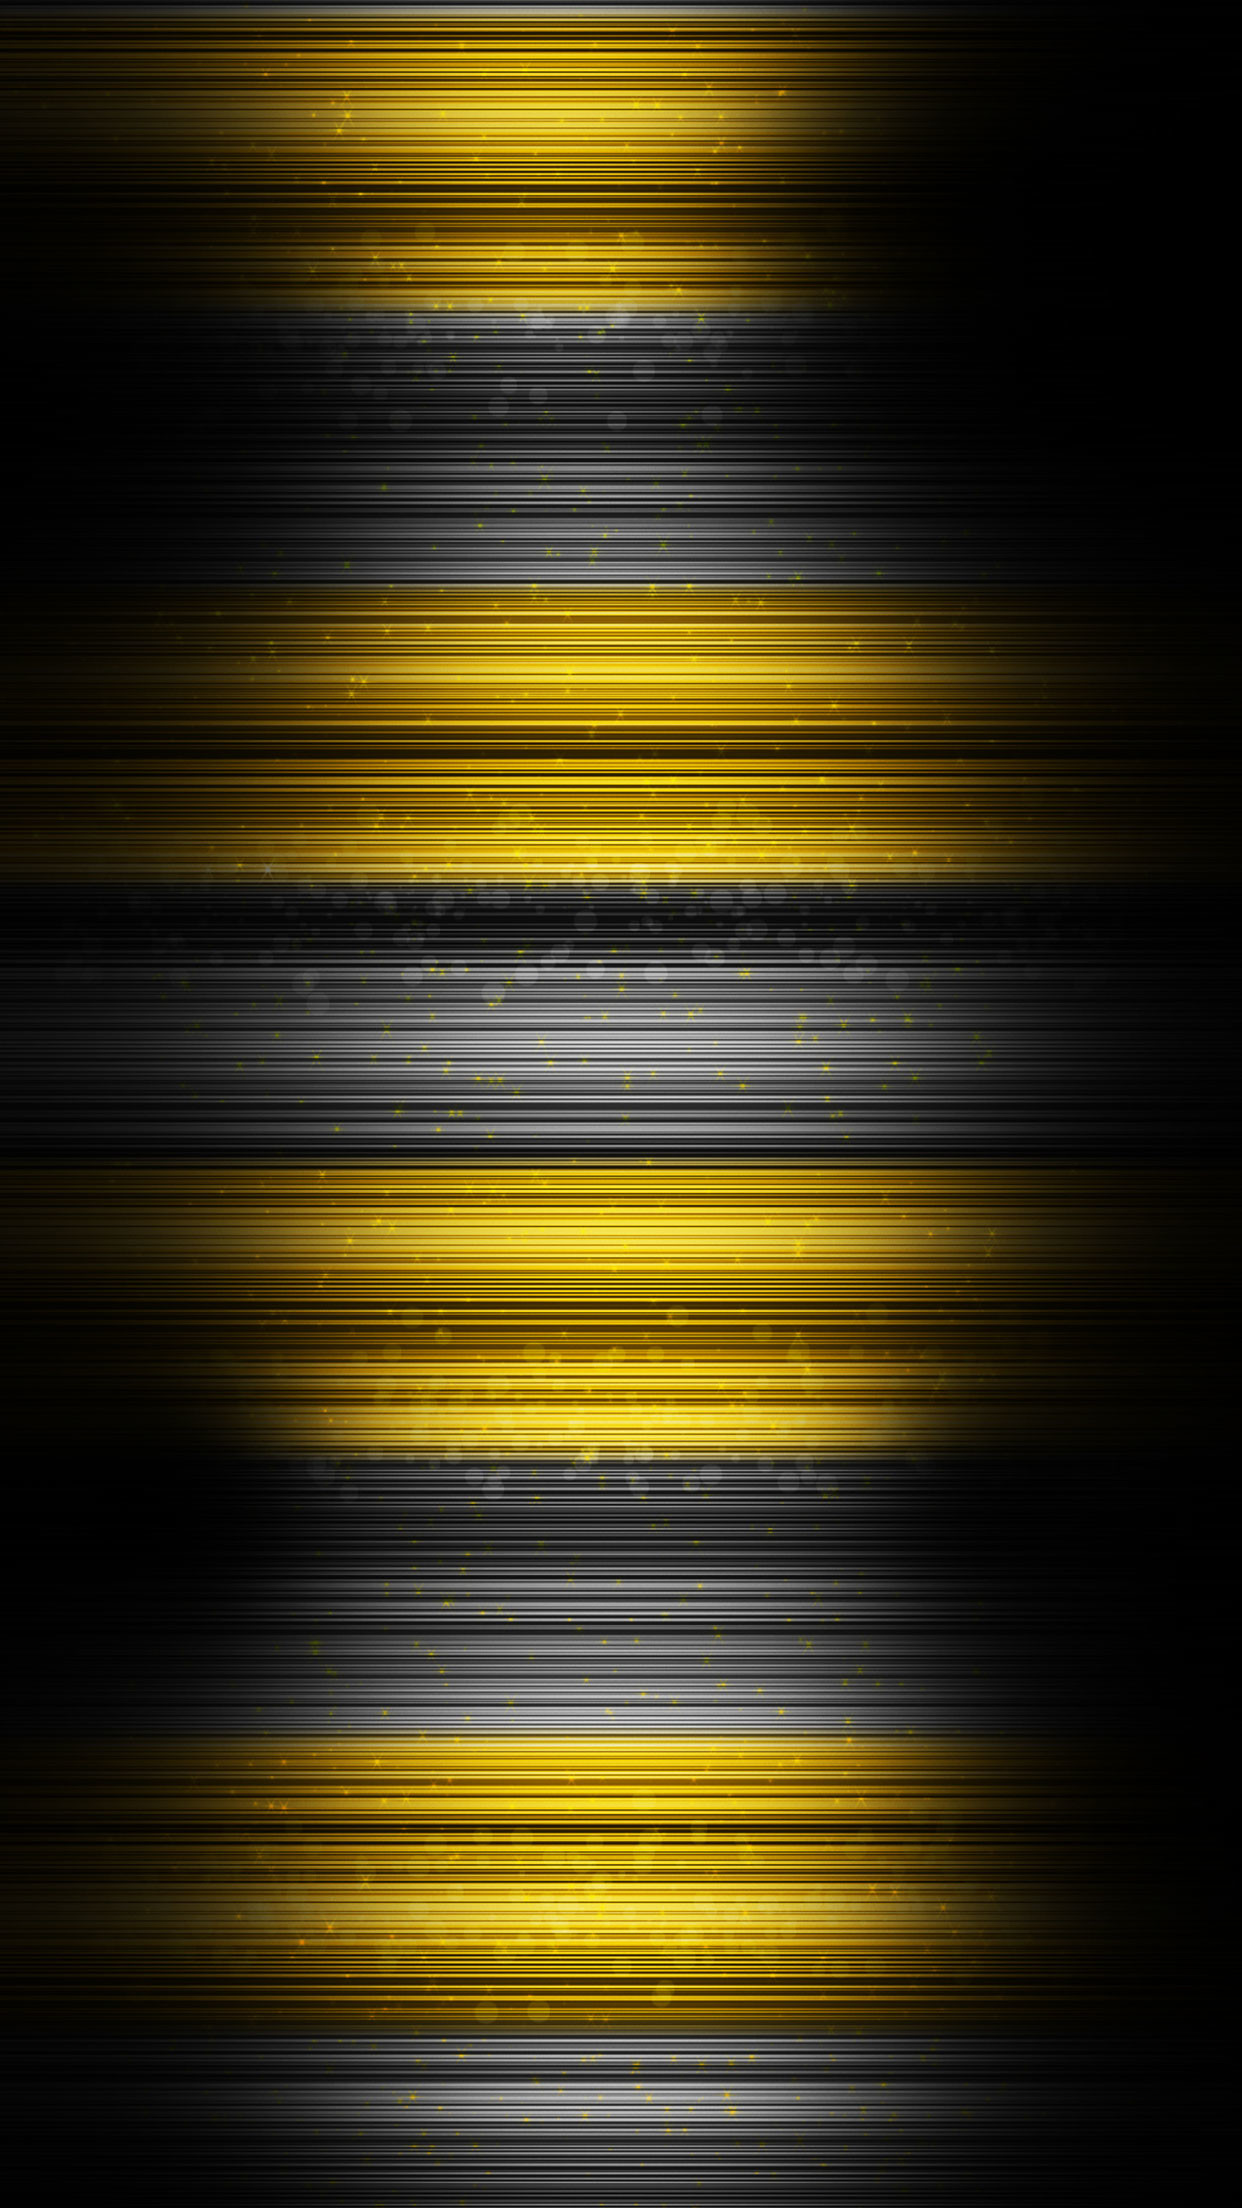 Black and Gold iPhone Wallpaper (72+ images)